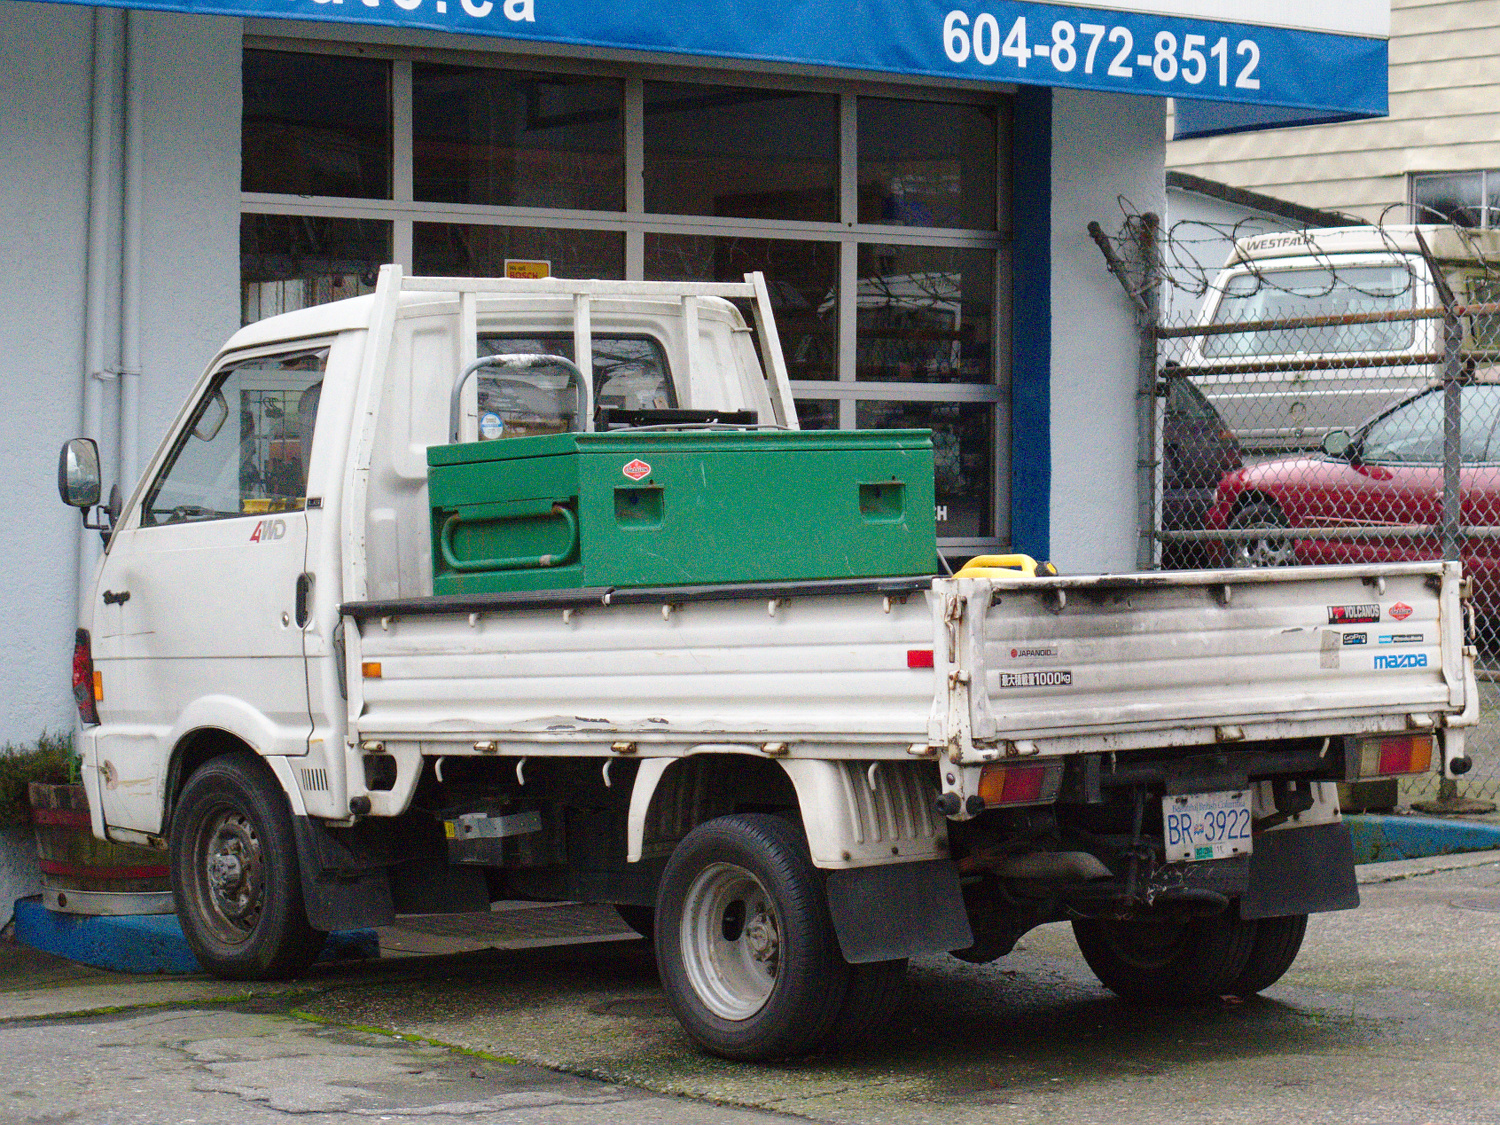 Old Parked Cars Vancouver: 1990 Mazda Bongo truck